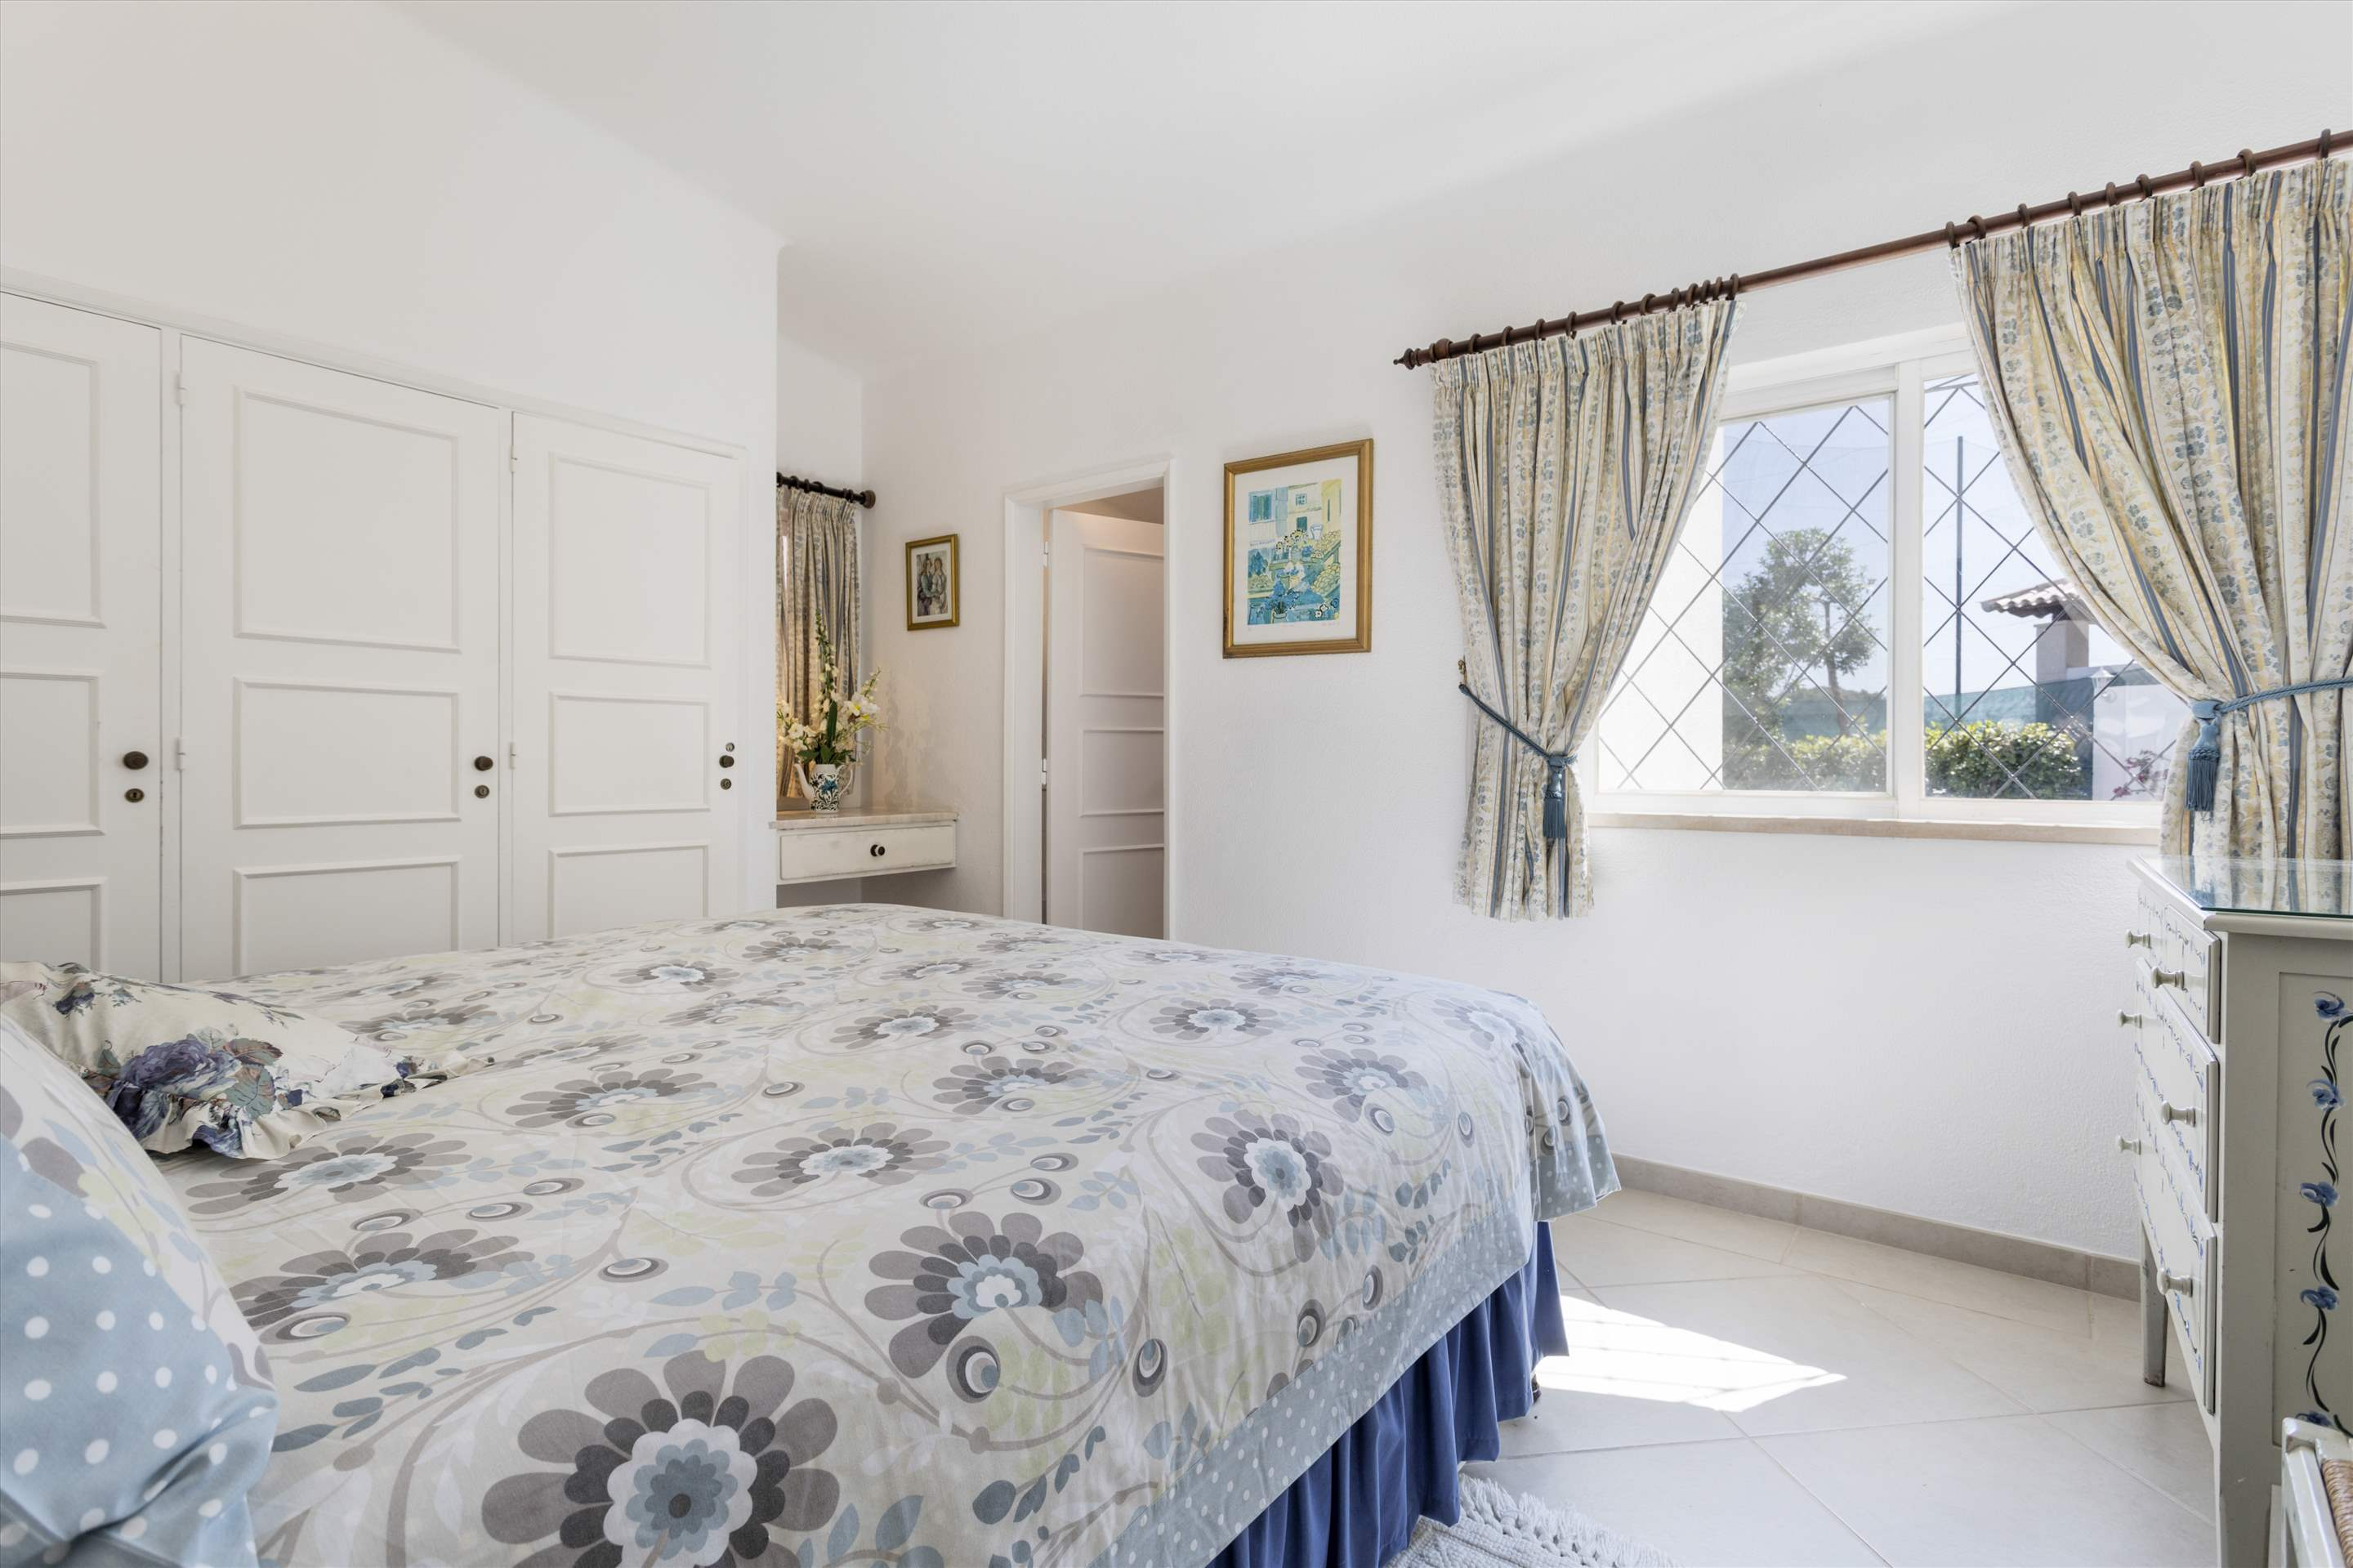 Villa Palmeira, 3 bedroom villa in Vale do Lobo, Algarve Photo #16